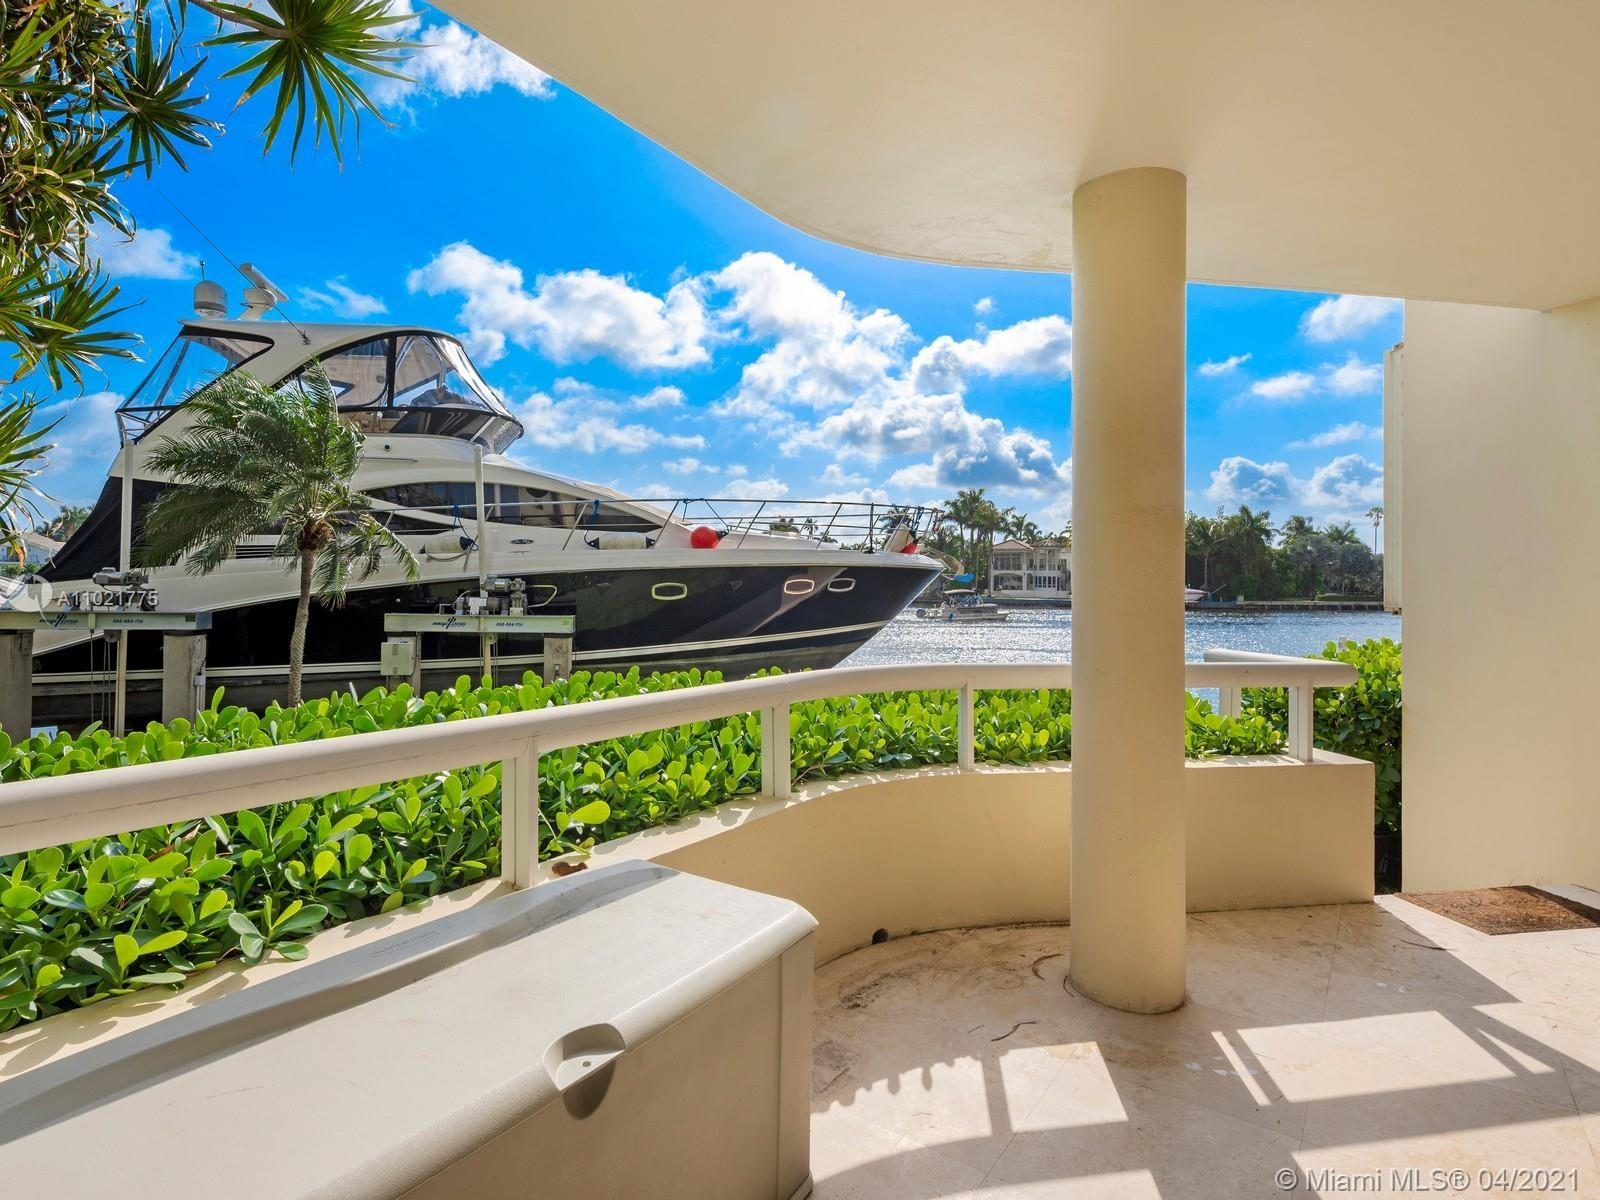 Terraces at Turnberry Condos for sale at Aventura